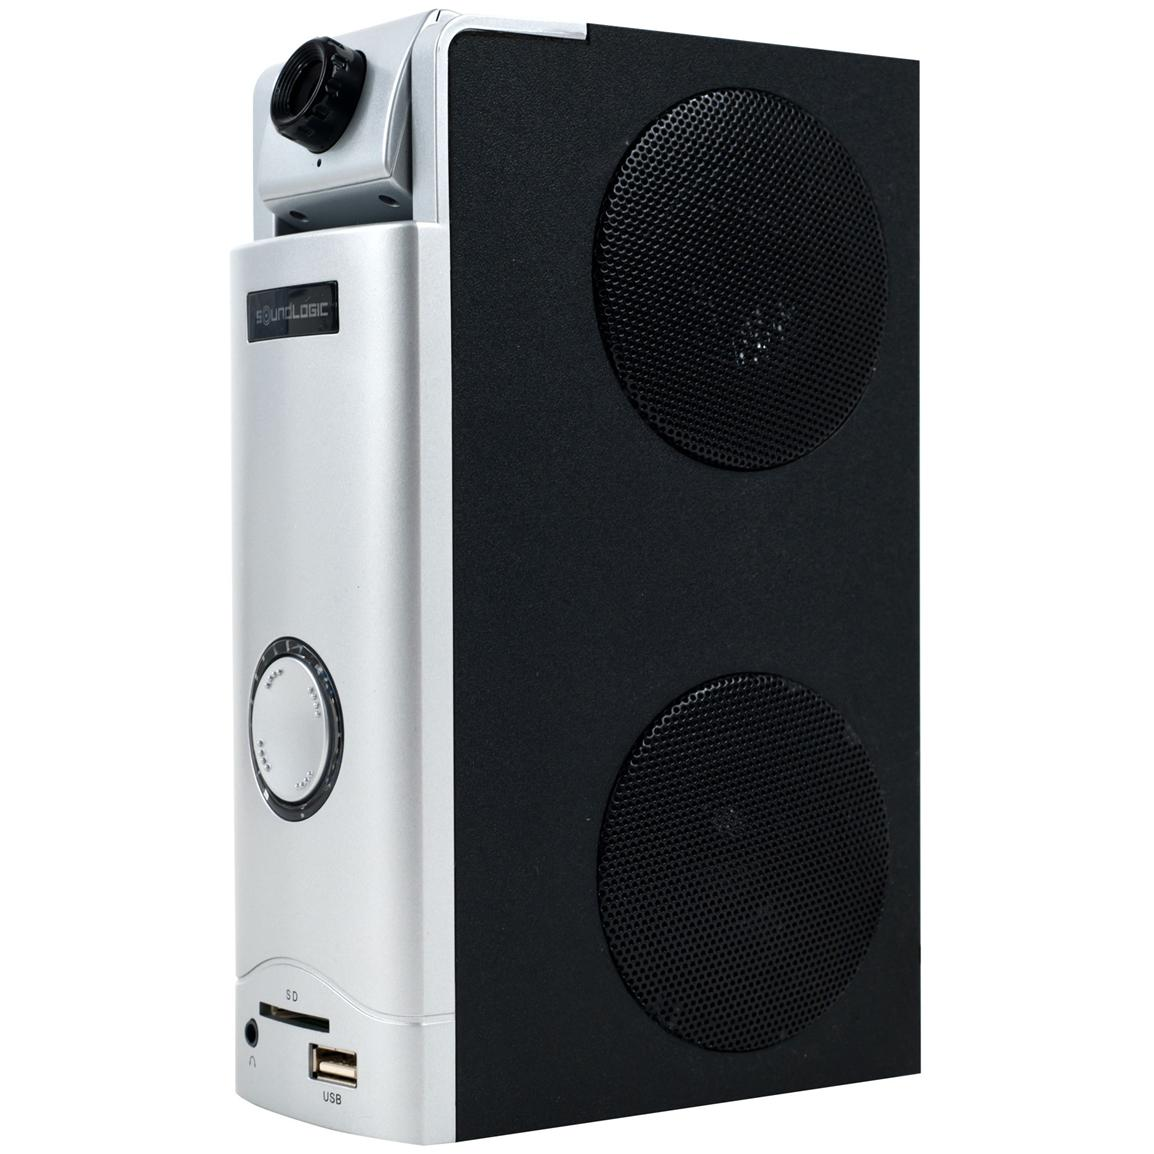 Multimedia speaker for video chats and listening to music